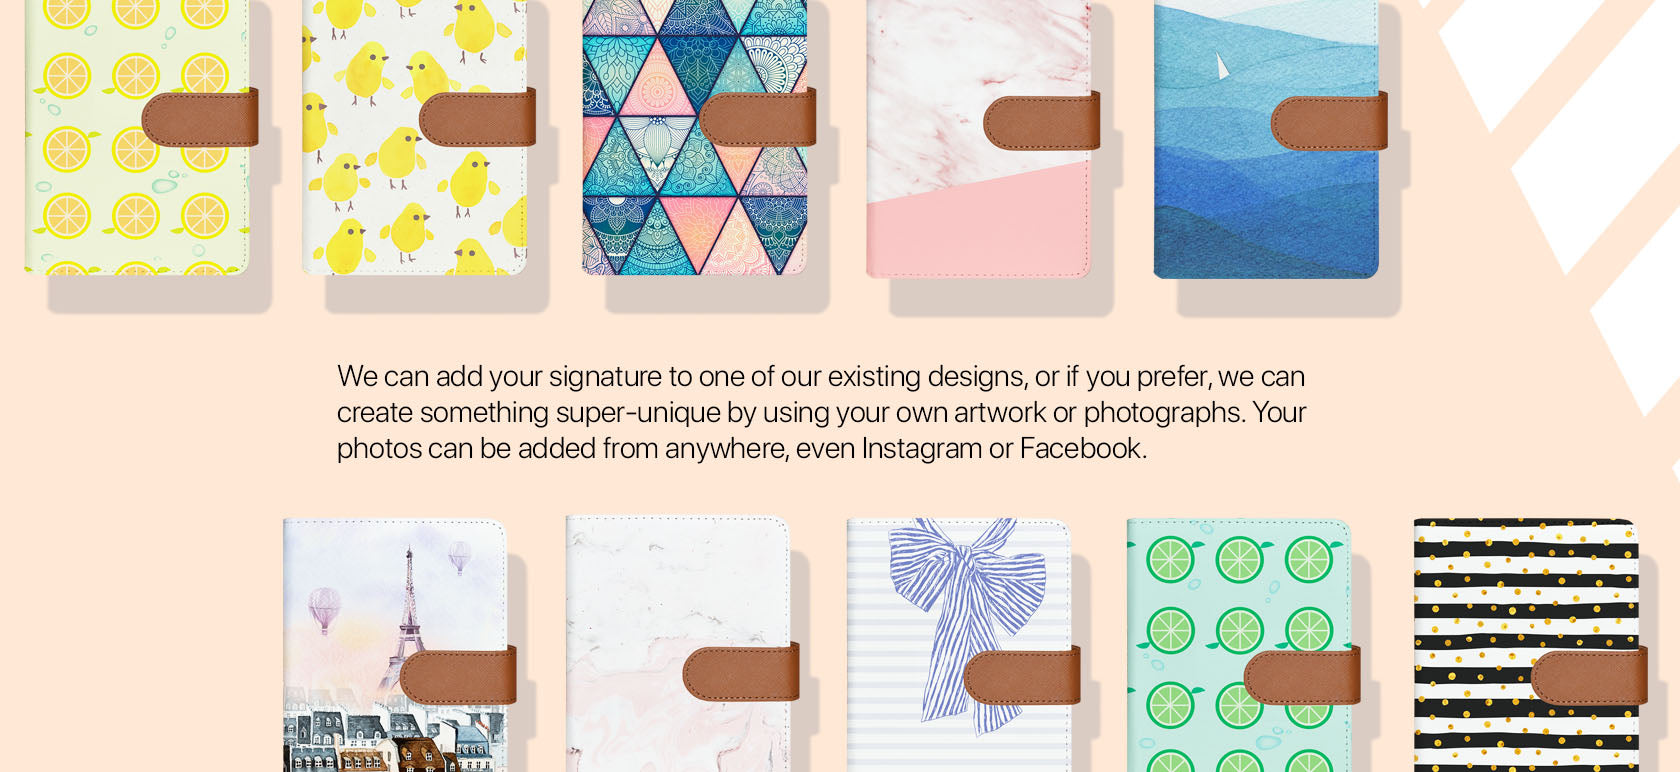 We can add your signature to one of our existing designs, or if you prefer, we can create something super-unique by using your own artwork or photographs. Your photos can be added from anywhere, even Instagram or Facebook.